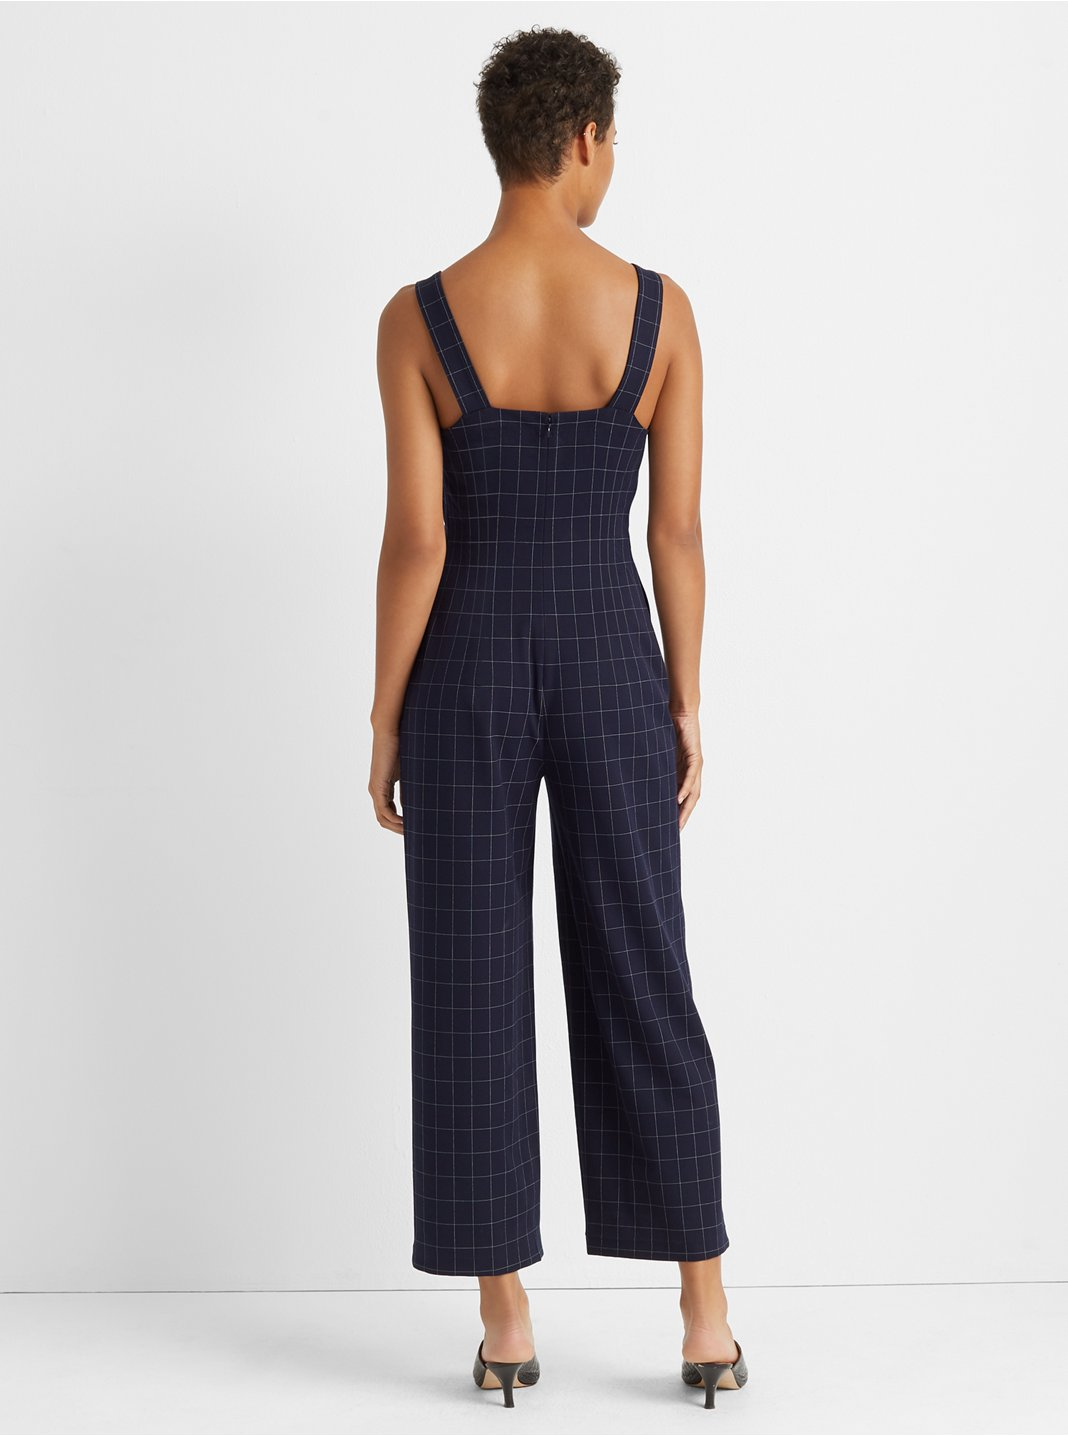 newest 29b13 5cb8a Women's Jumpsuits and Rompers | Club Monaco